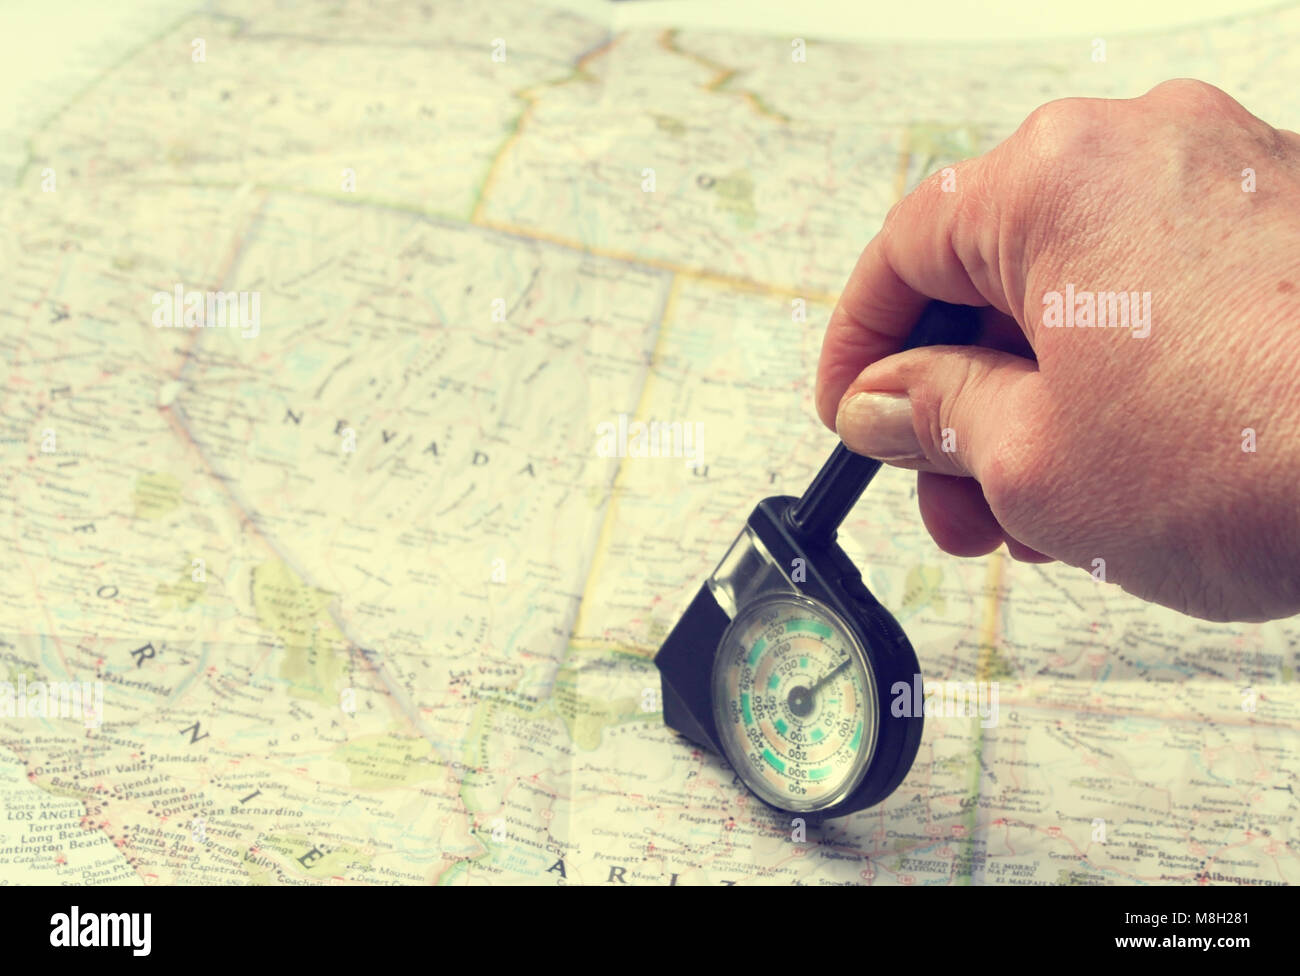 Hand with distance calculator on route map of west usa Stock Photo Distance Calculator Usa Map on